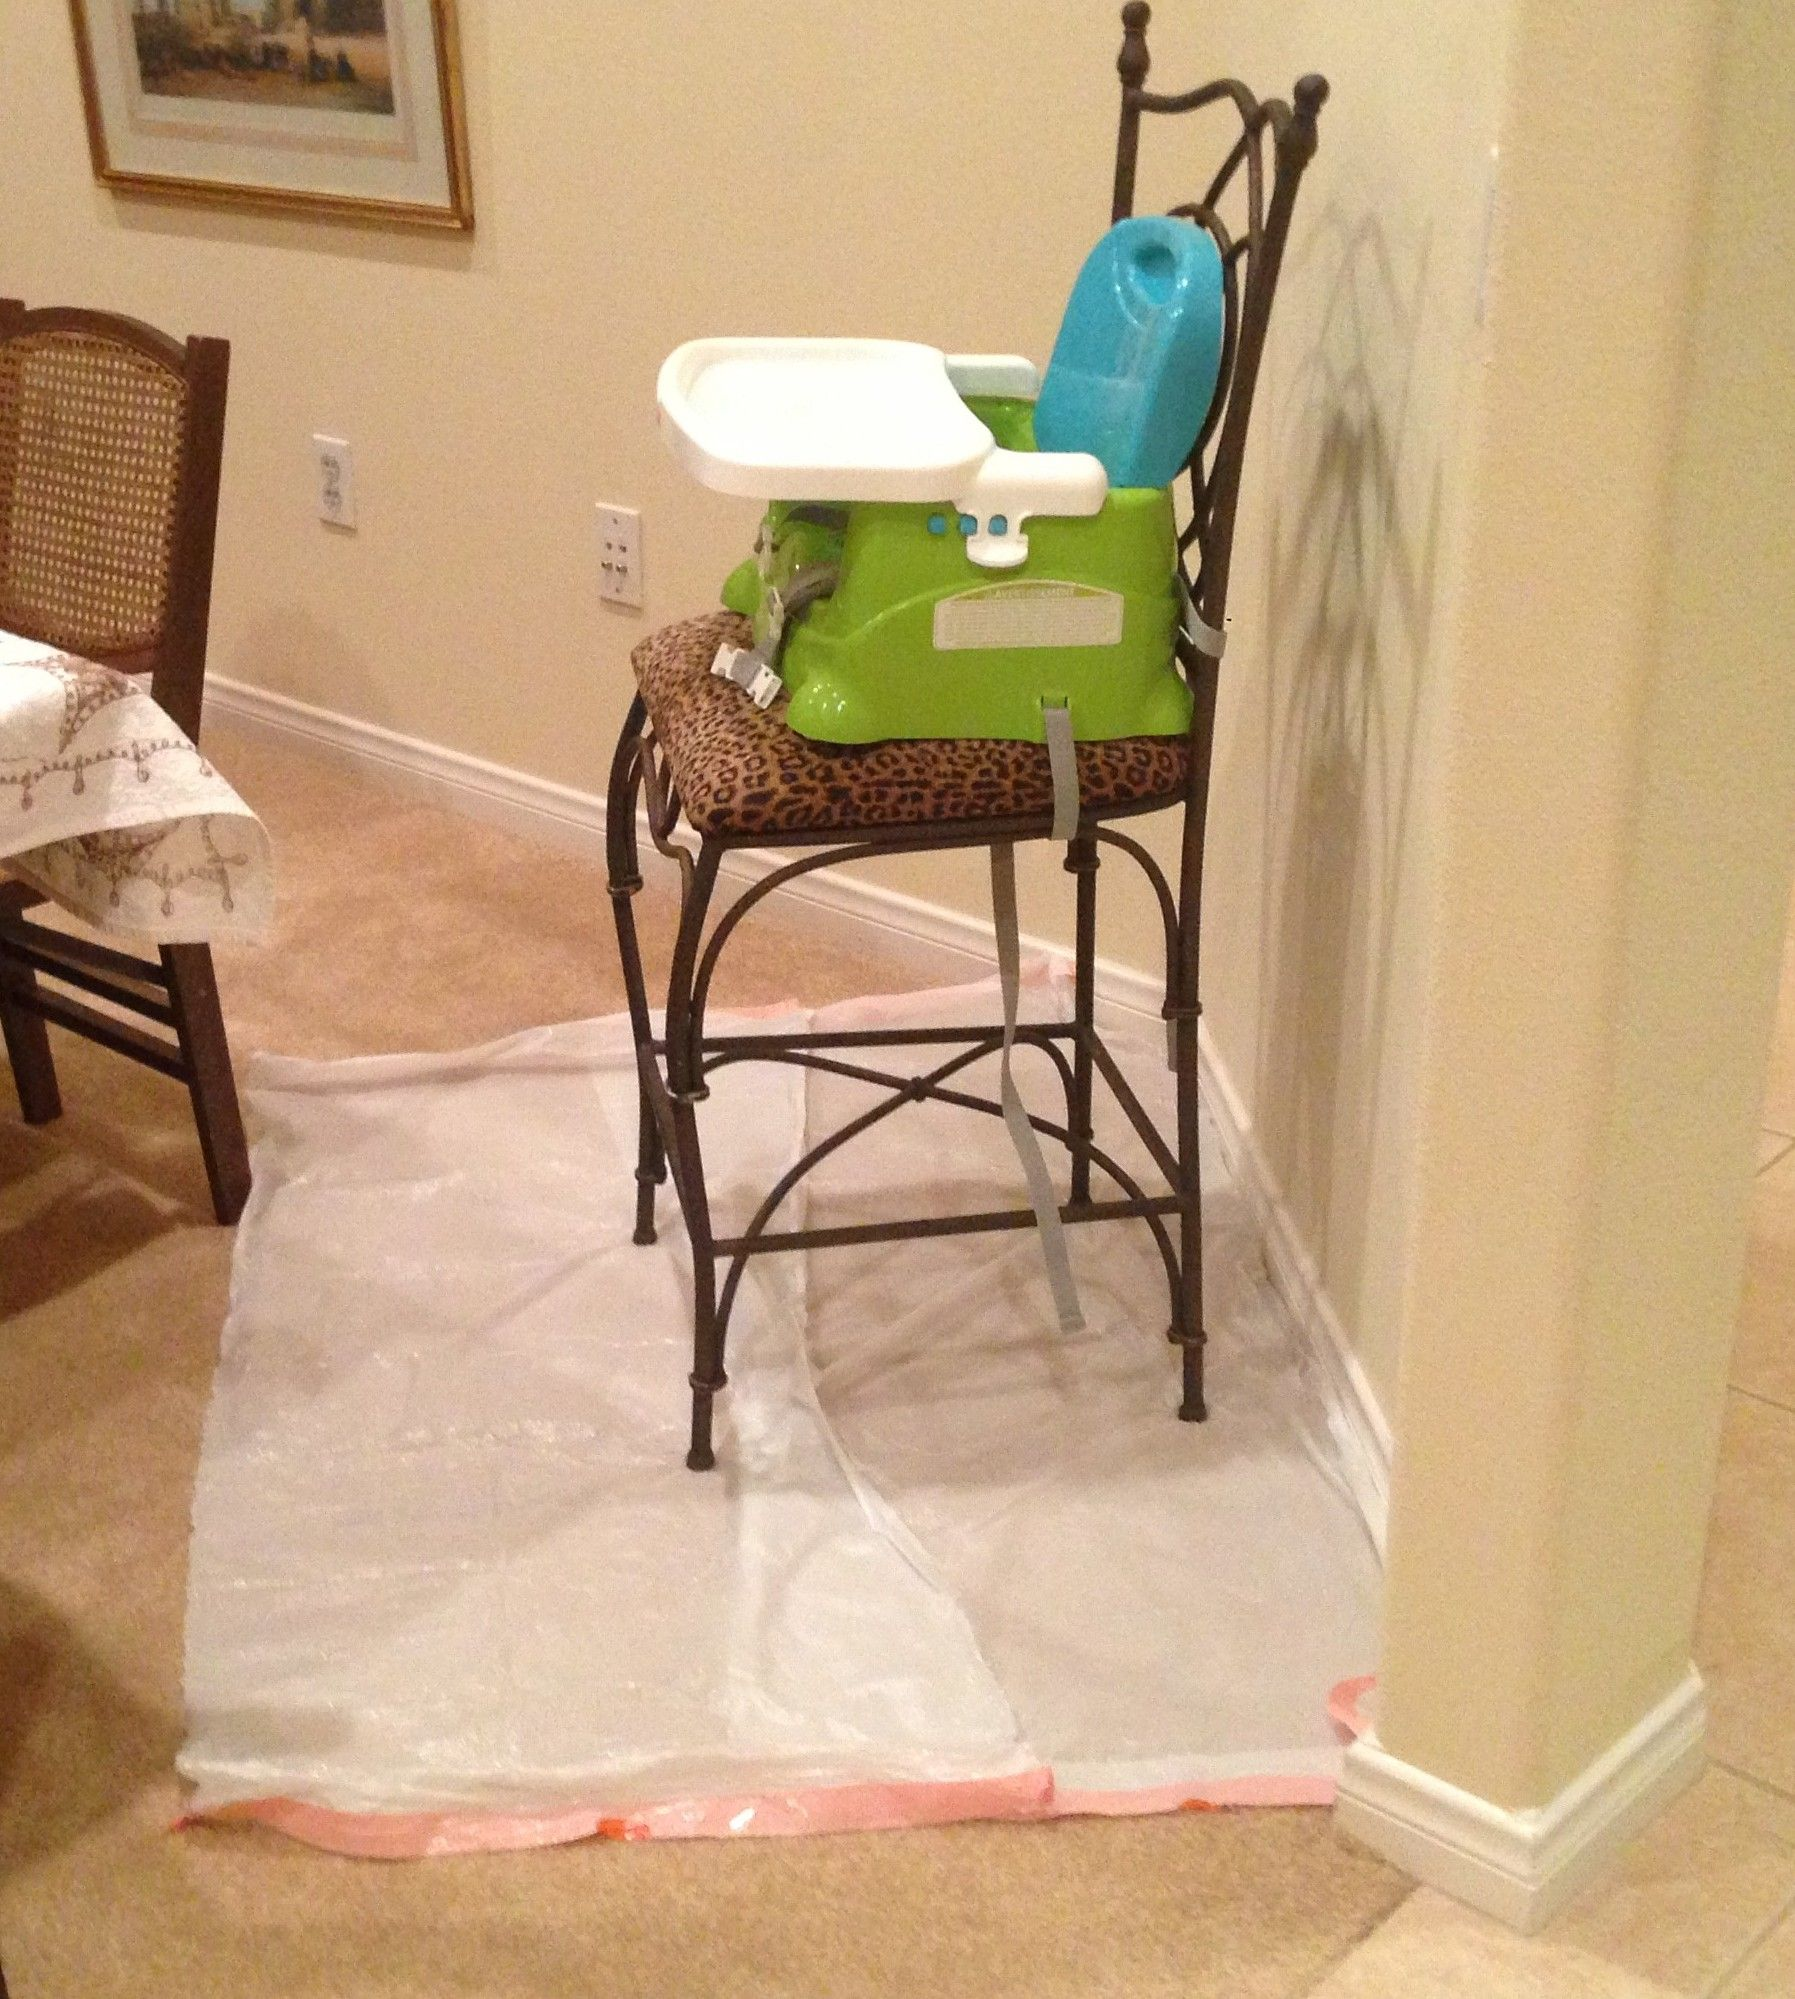 Today S Hint Diy Disposable High Chair Splat Mats High Chair Floor Mat Splat Mat High Chair Mat